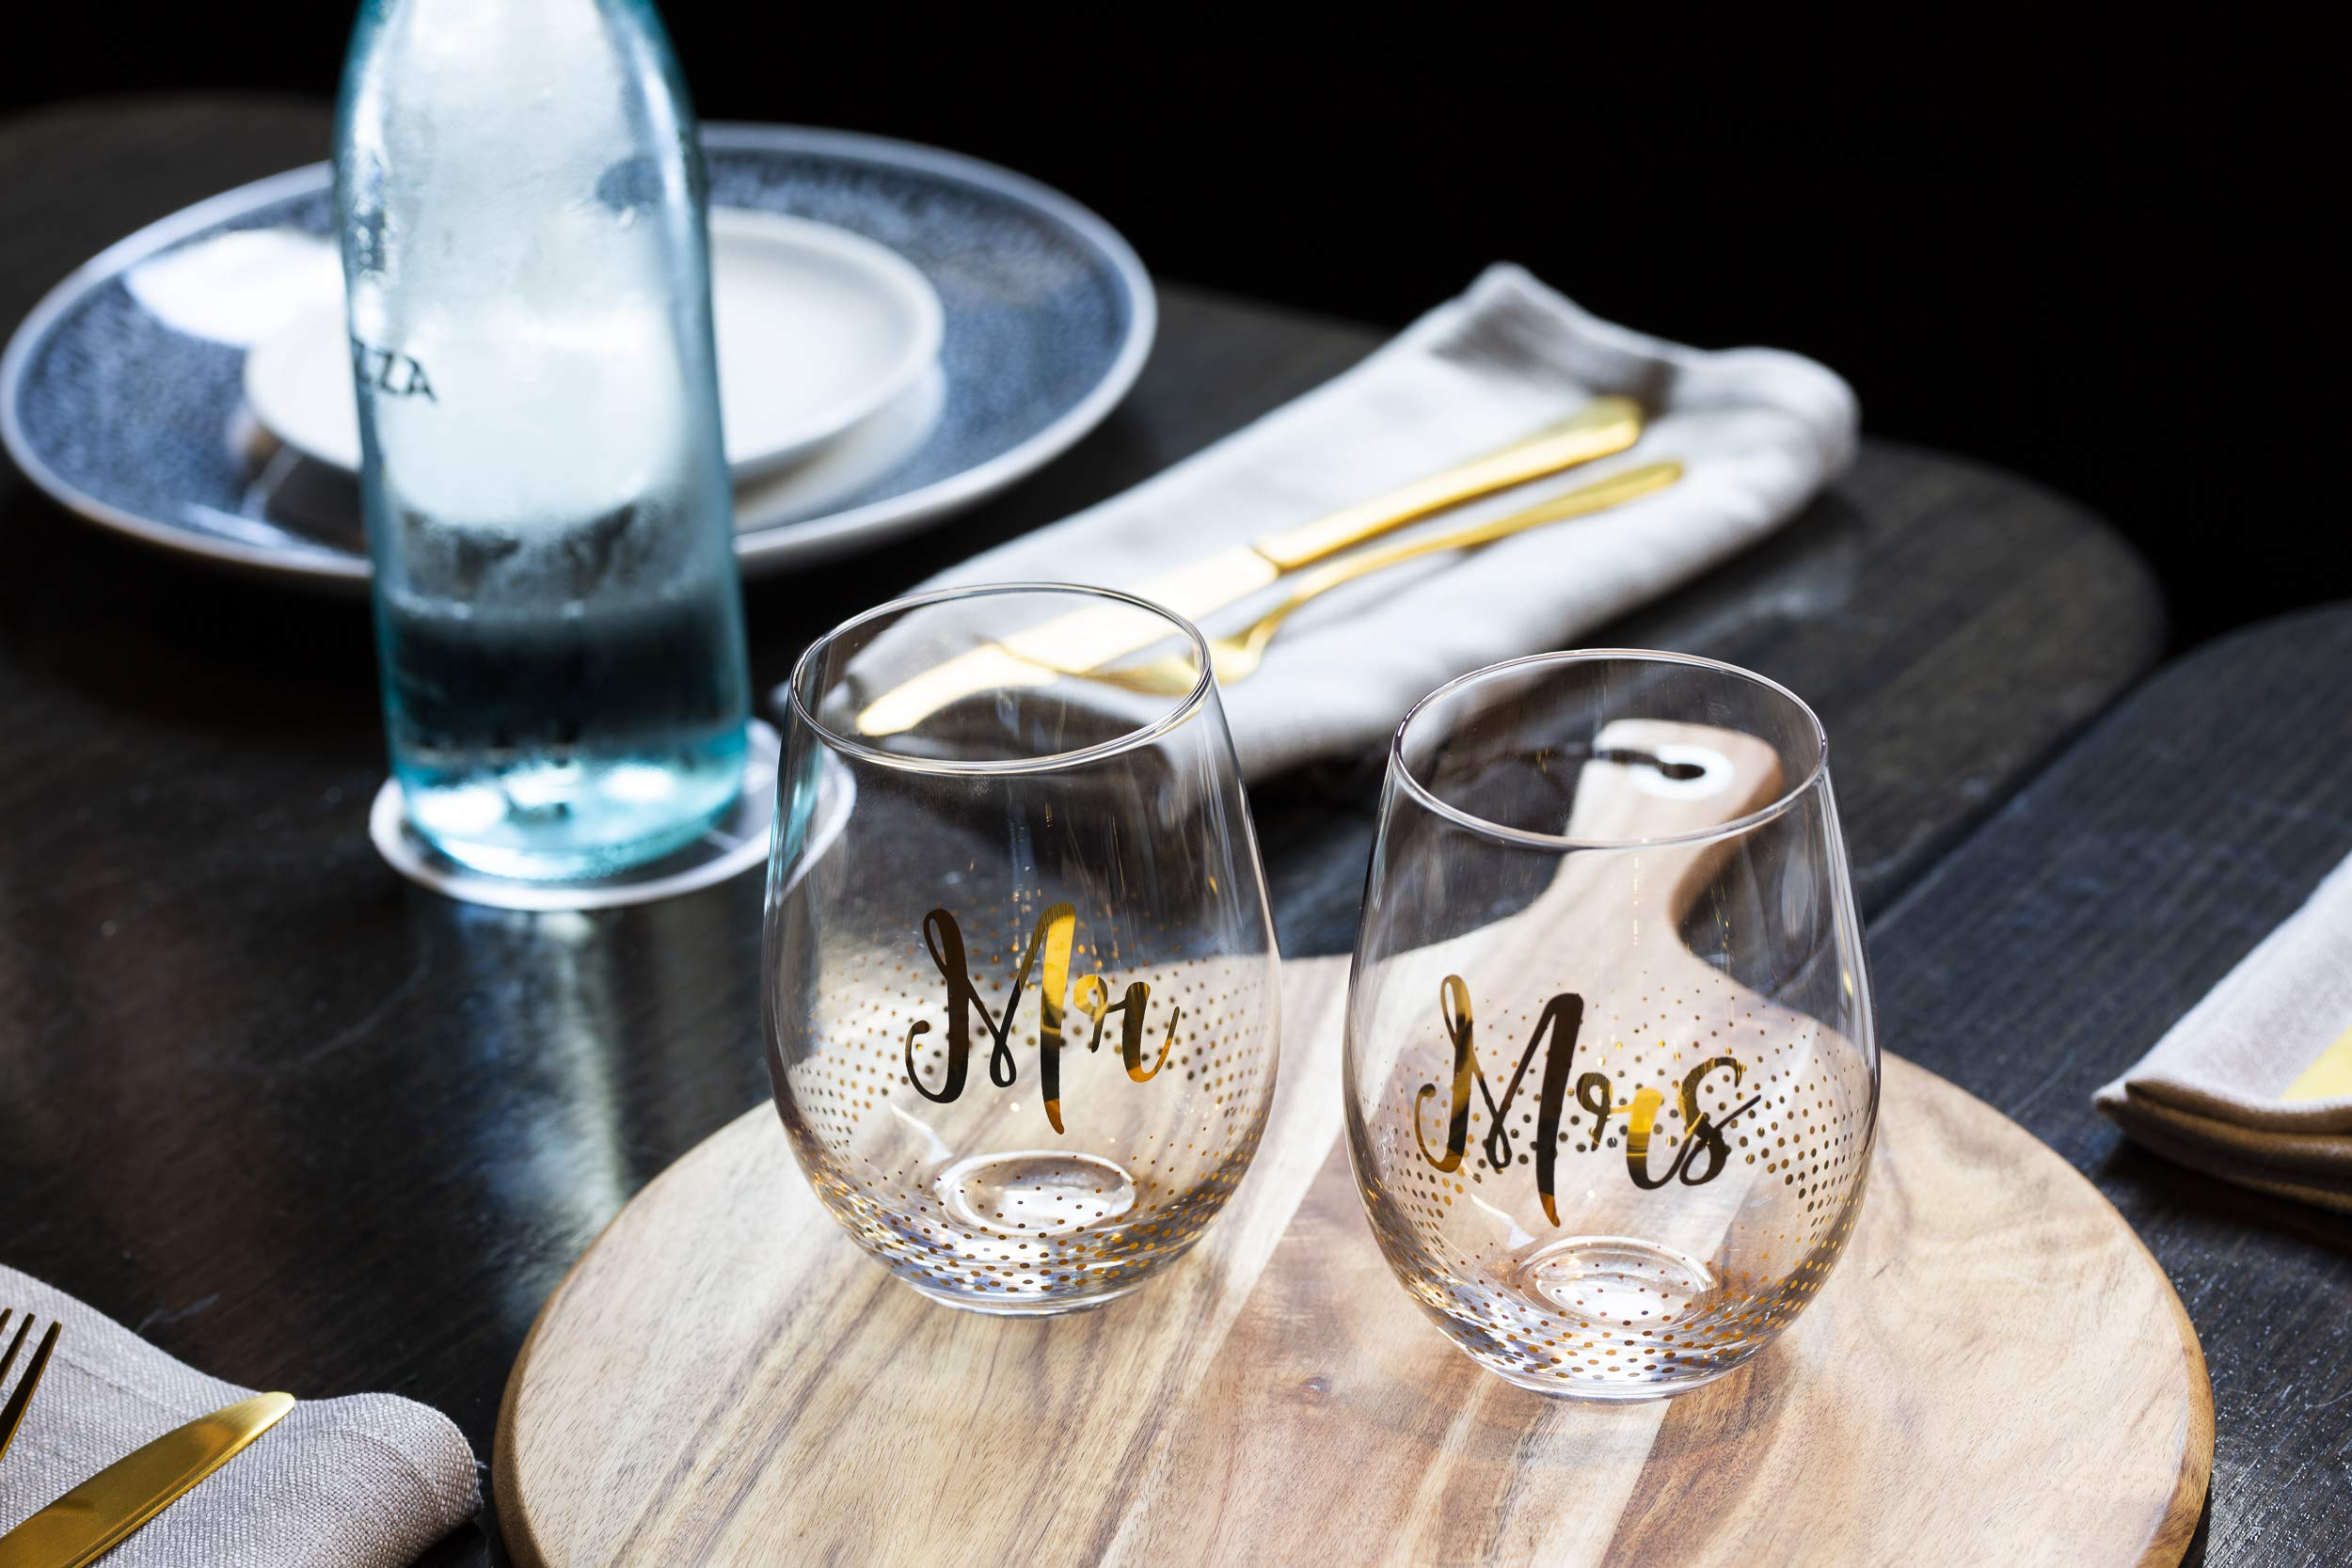 Mr & Mrs Gifts, set of 2 Crystal stemless wine glasses, with beautiful gift box, Perfect Engagement Gift, Wedding gift, Anniversary or Couples gift. by Verre Esprit (Image #2)